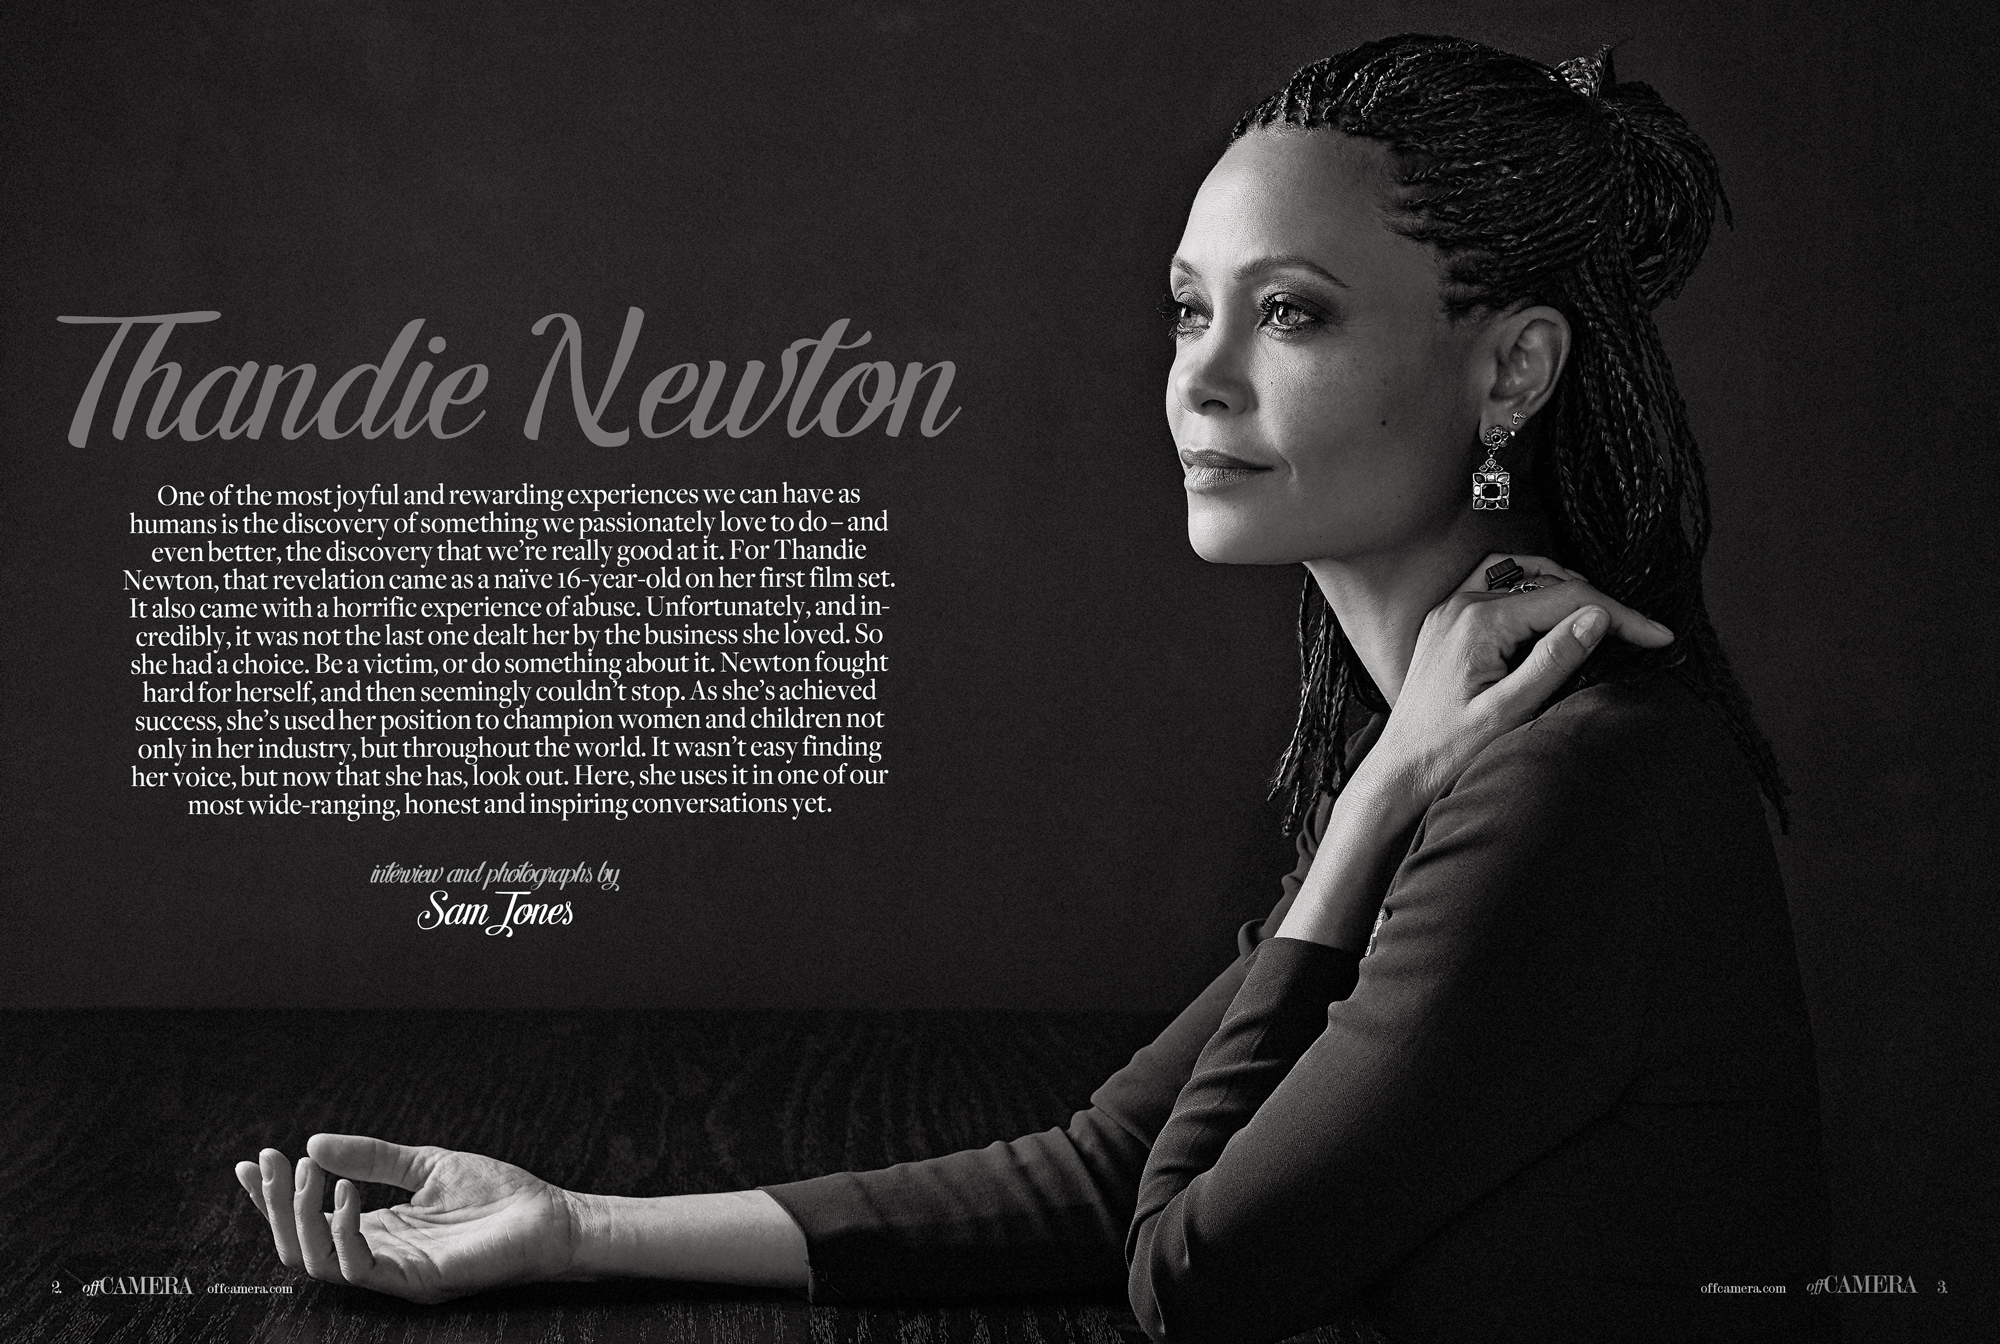 oC_ThandieNewton_Page4-5_RGB